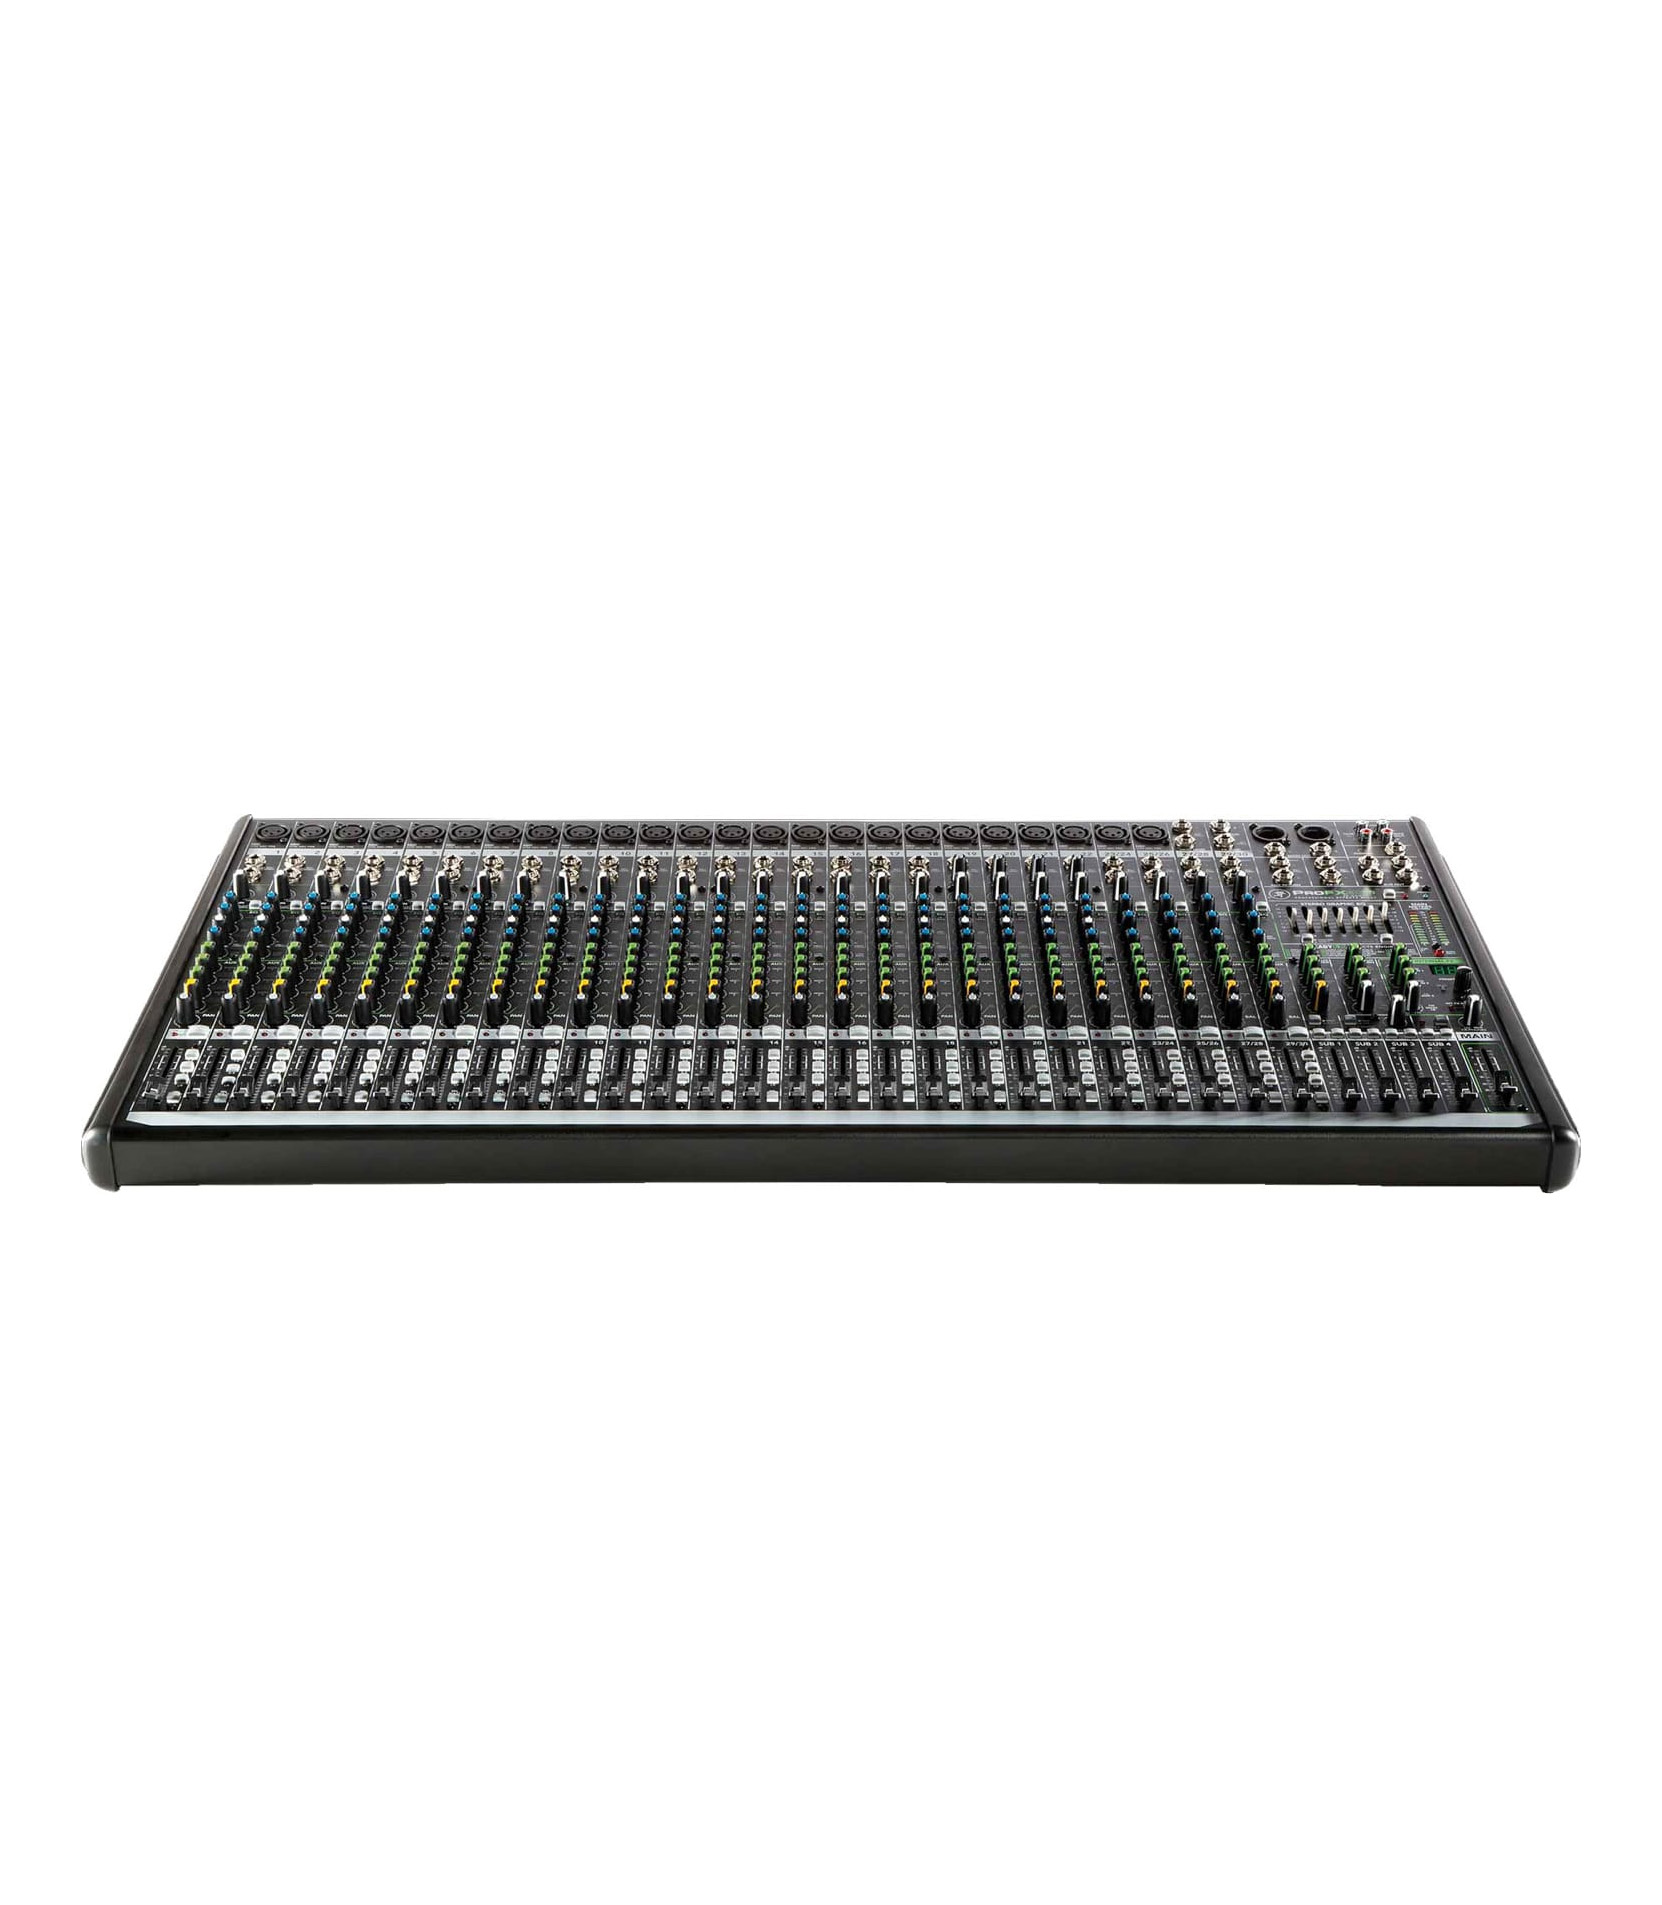 Buy Mackie Mixers ProFX30v2 UK30 channel 4 Bus Effects Mixer